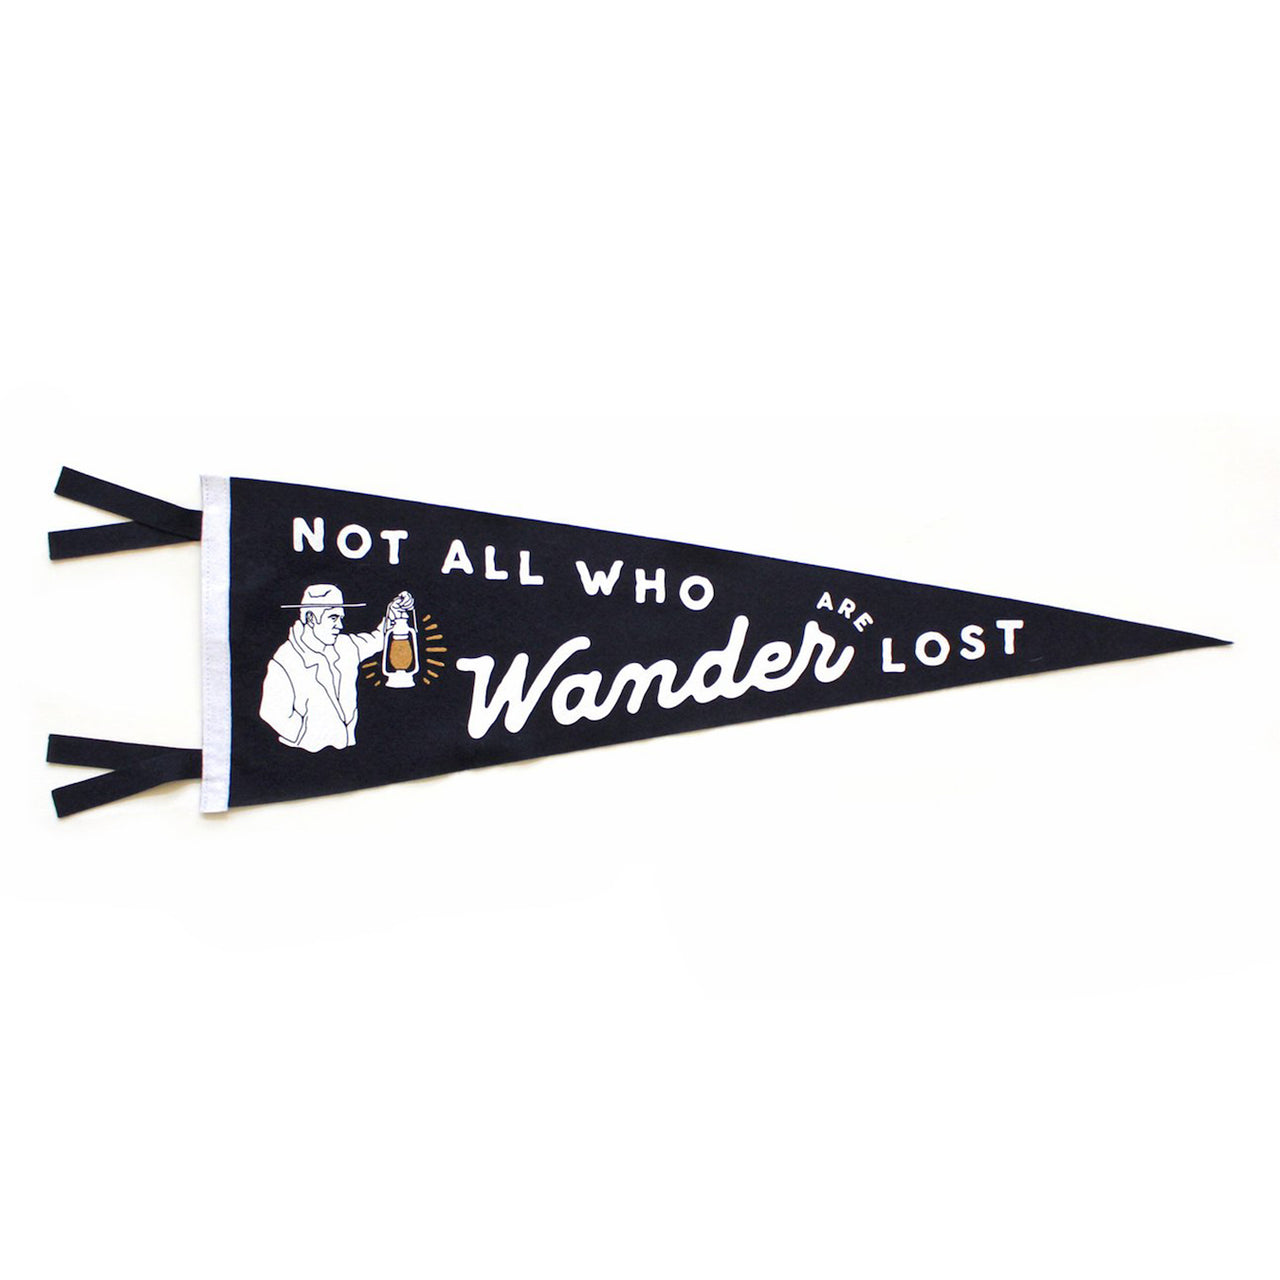 Oxford Pennant 'Not All Who Wander Are Lost' Pennant